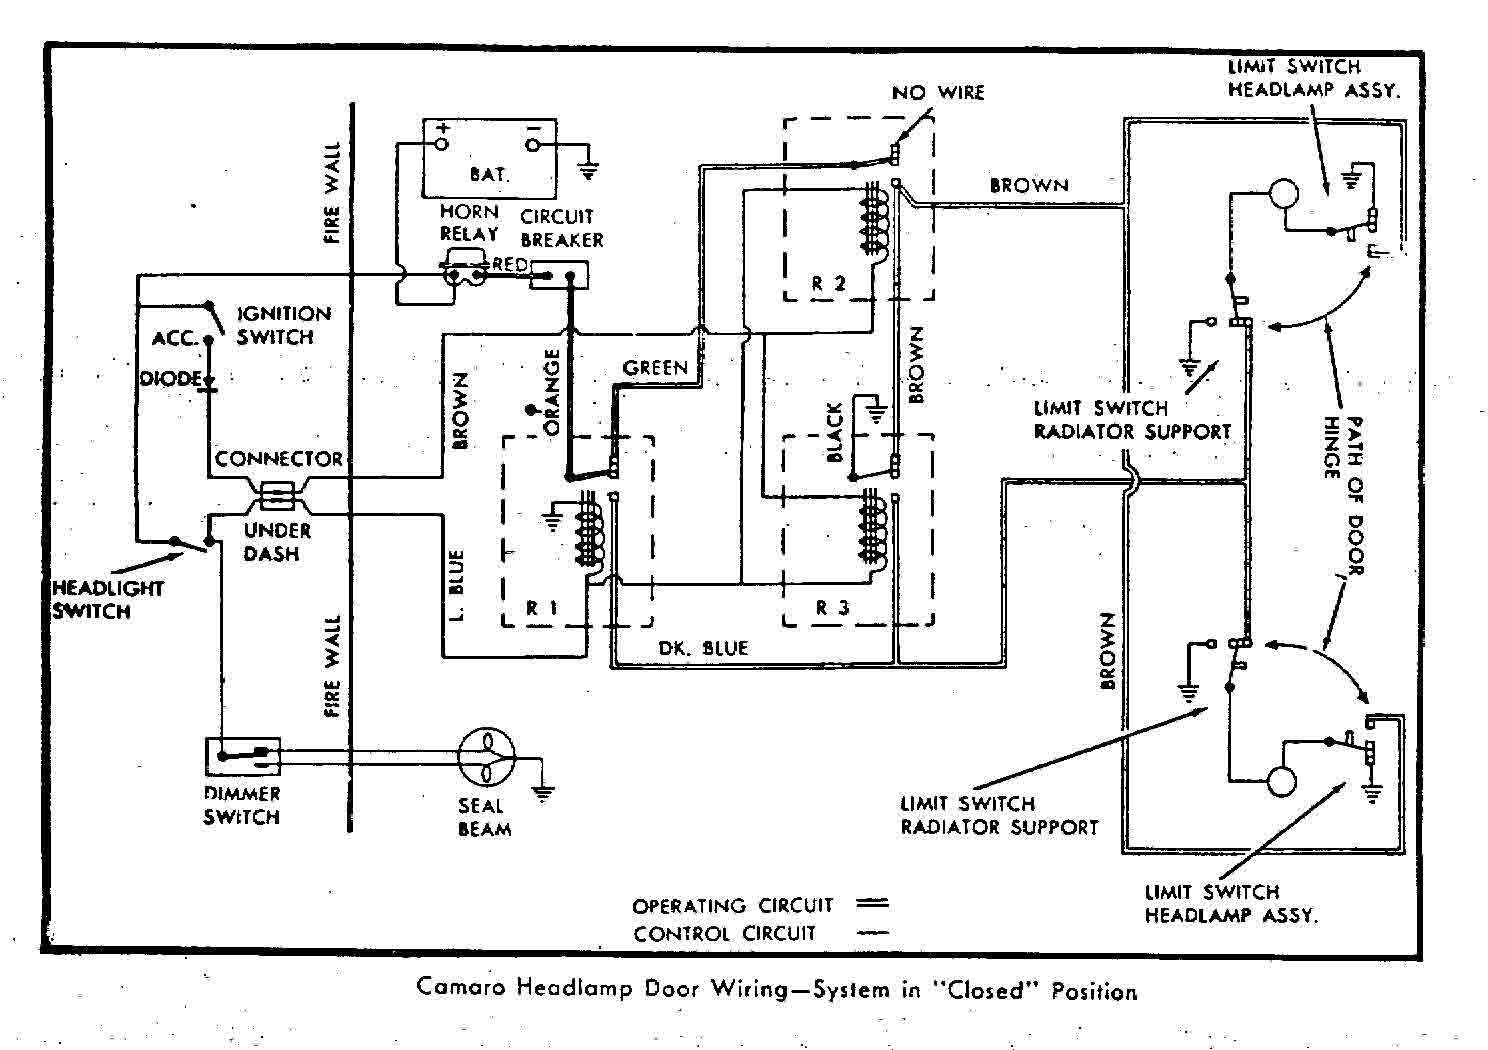 67 Camaro Door Diagram Opinions About Wiring Diagram \u2022 1967 Camaro Wiring  Diagram Online 1967 Camaro Door Latch Diagram Wiring Schematic